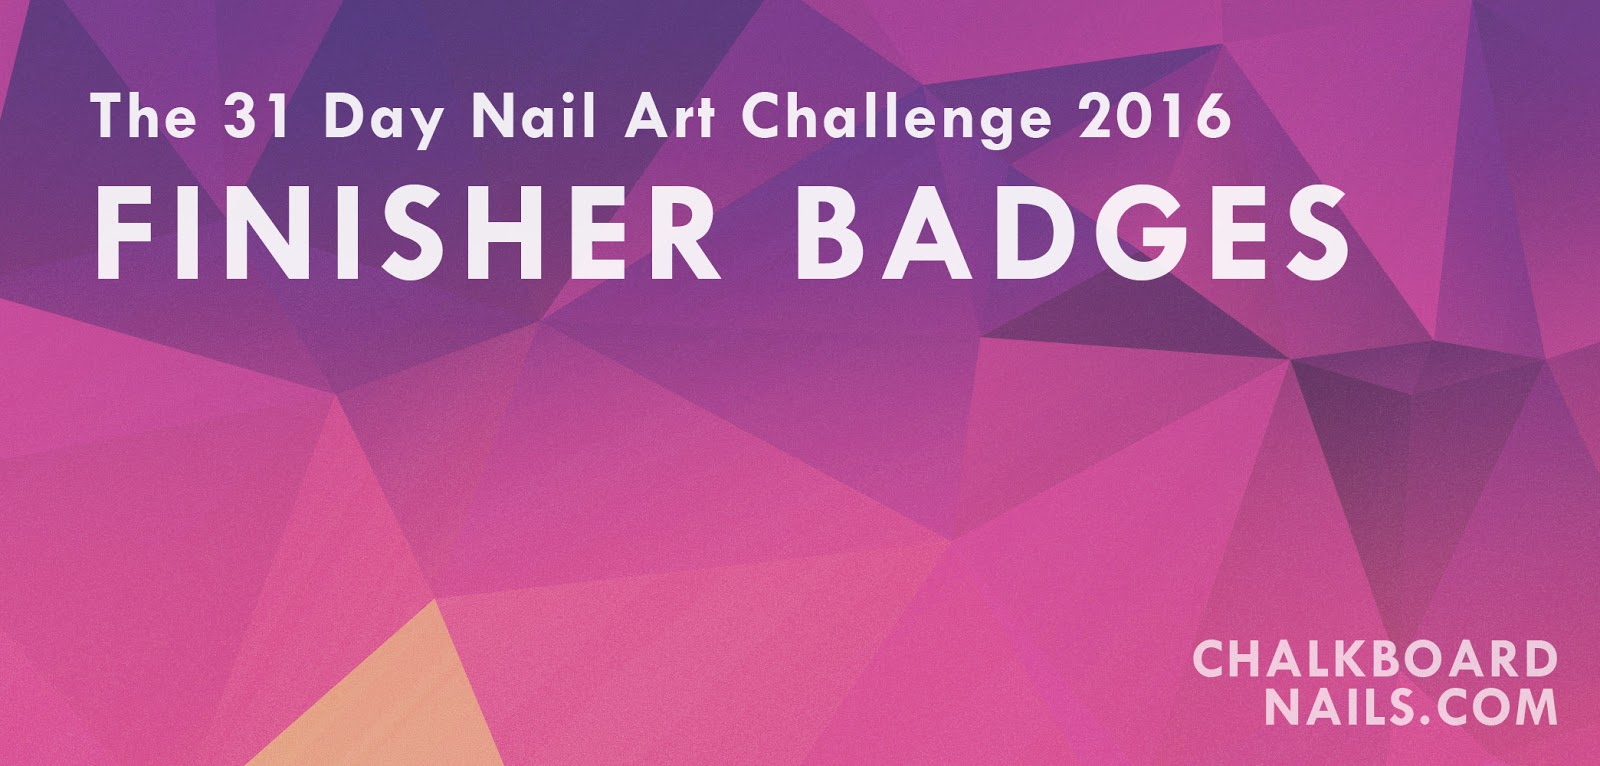 The 31 Day Nail Art Challenge 2016 Finisher Badges